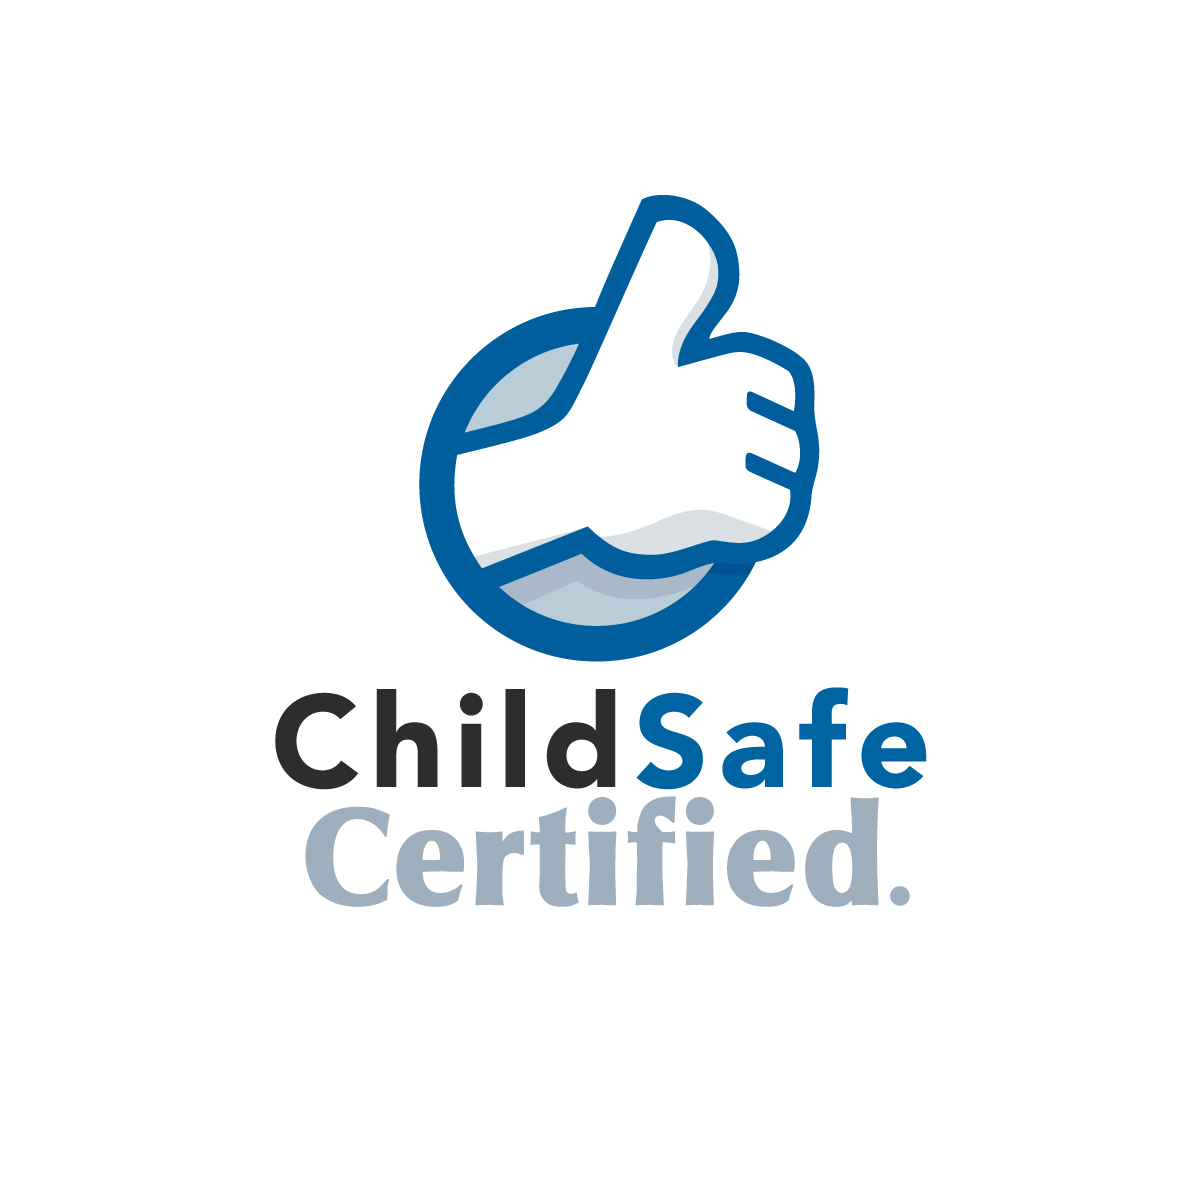 ChildSafe Certified logo, a blue hand with the 'thumbs up' signal being given and the words ChildSafe Certified